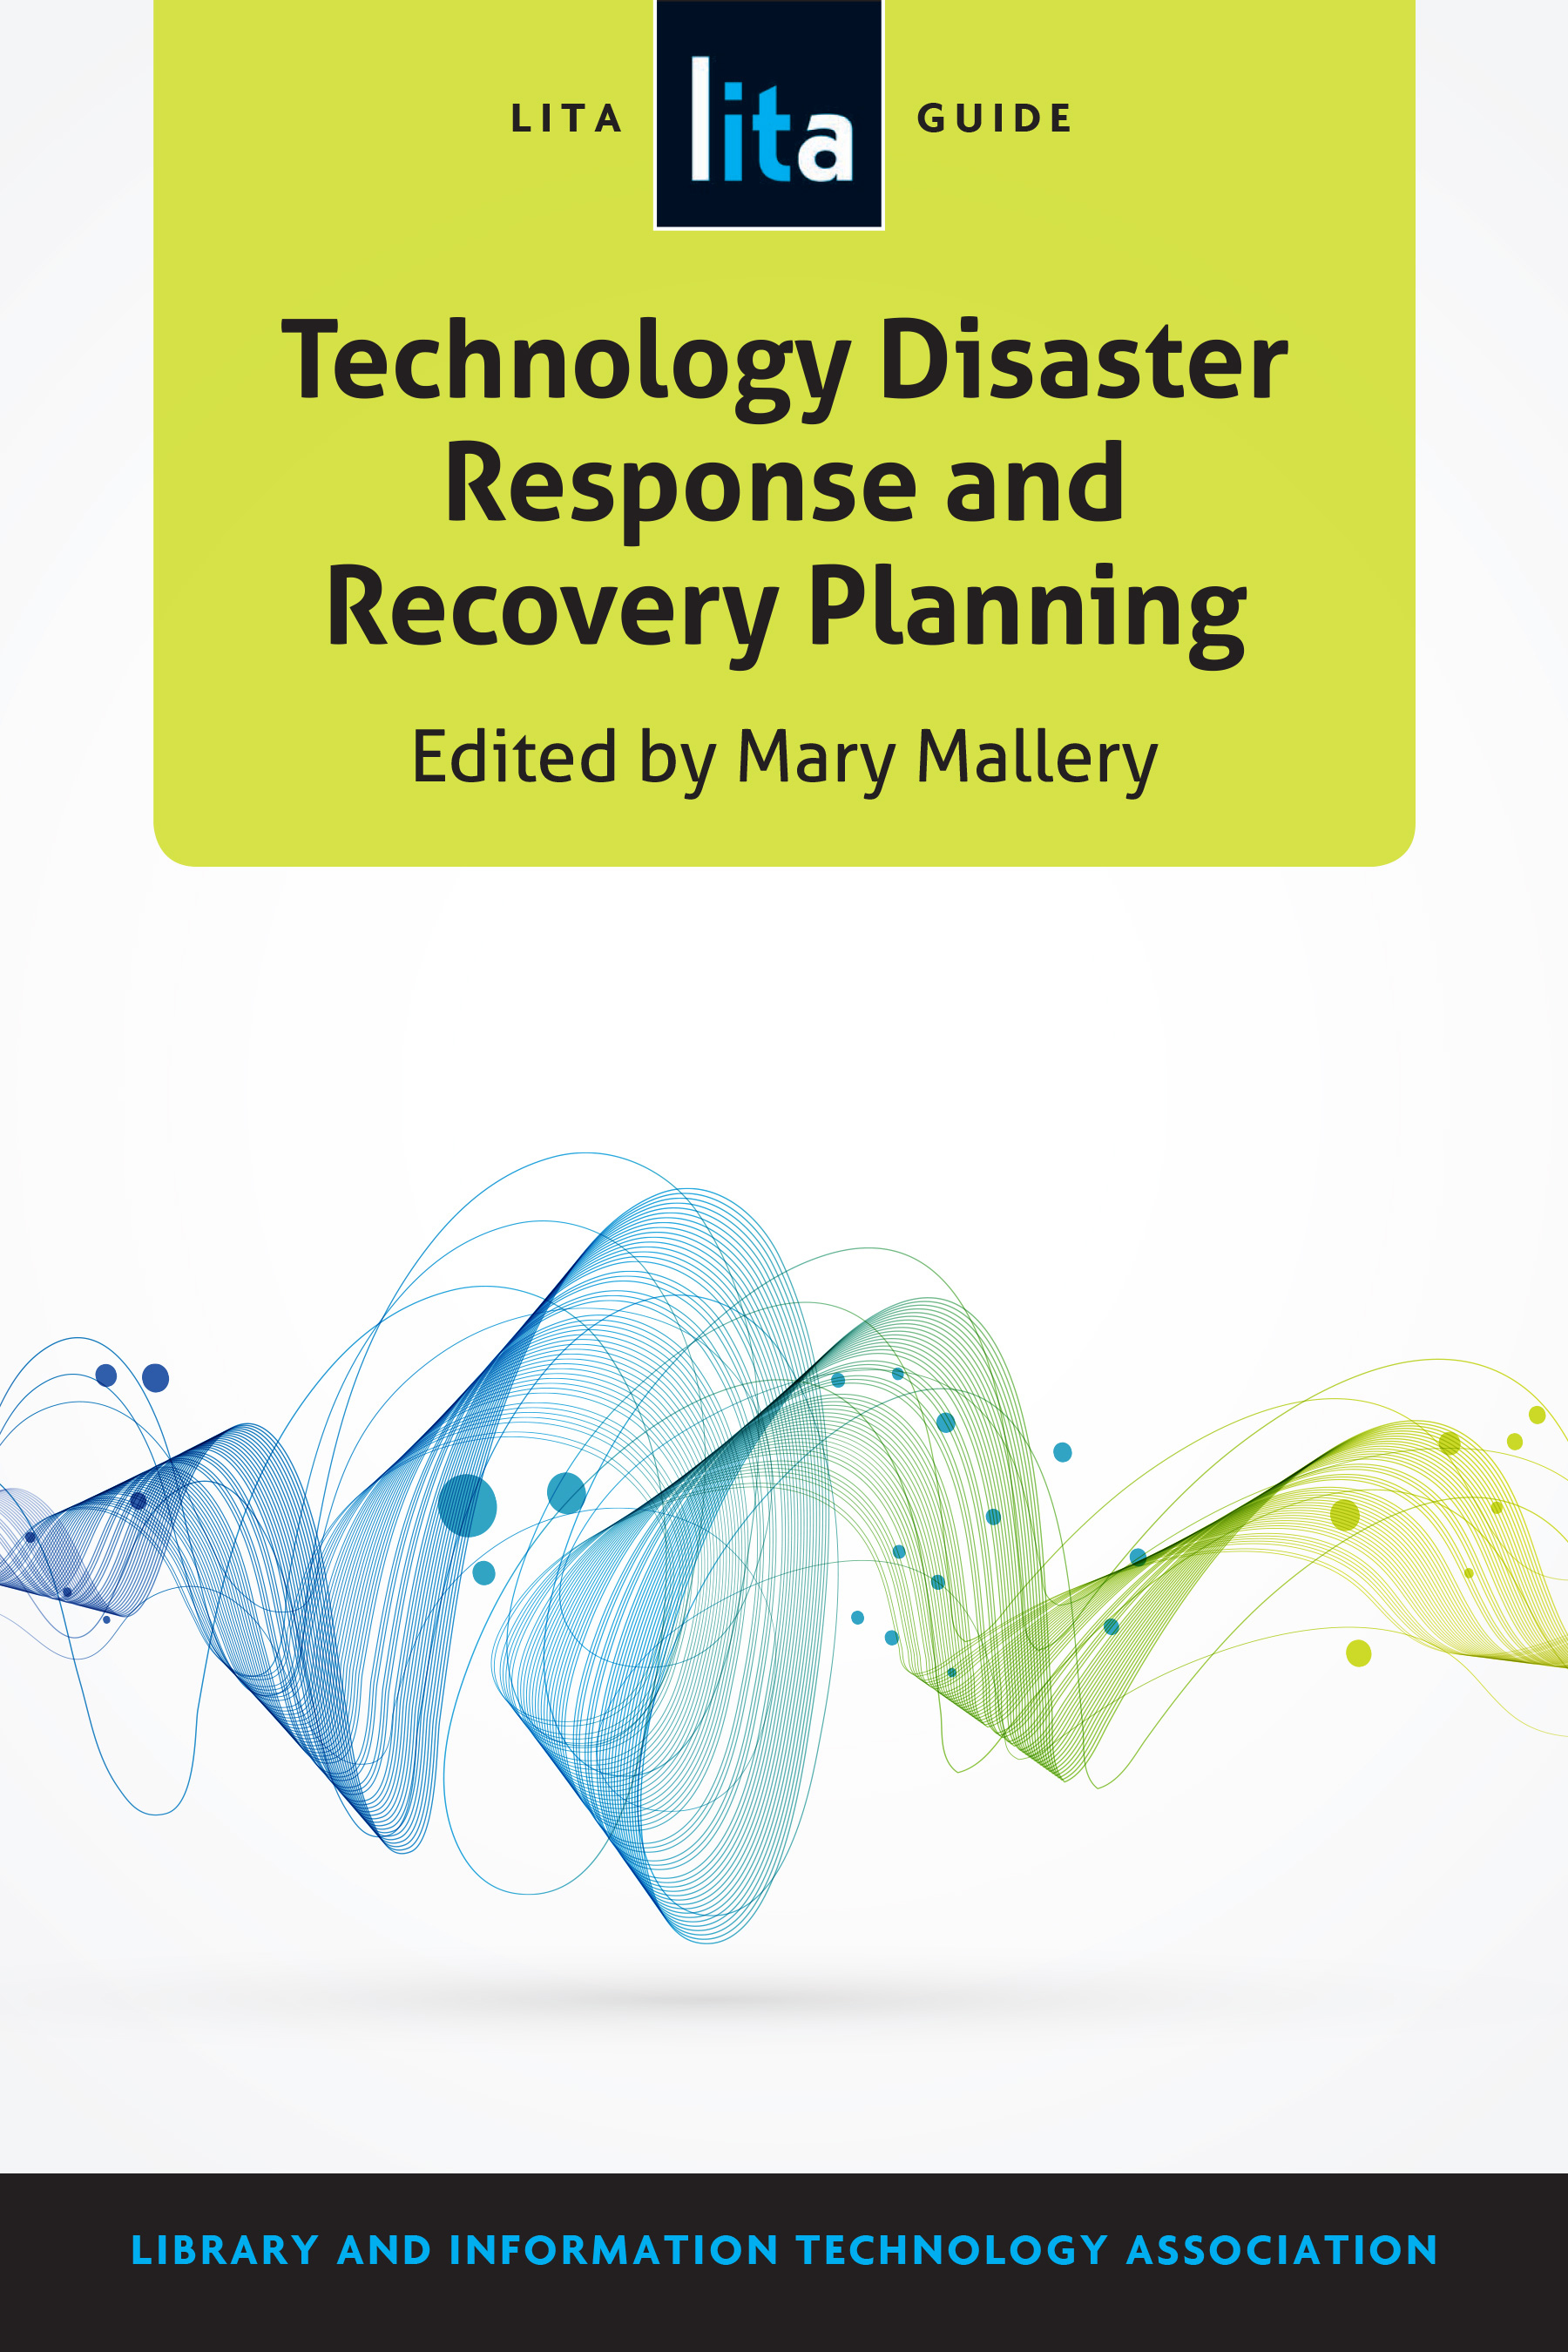 LITA guide to technology disaster response and recovery planning ...